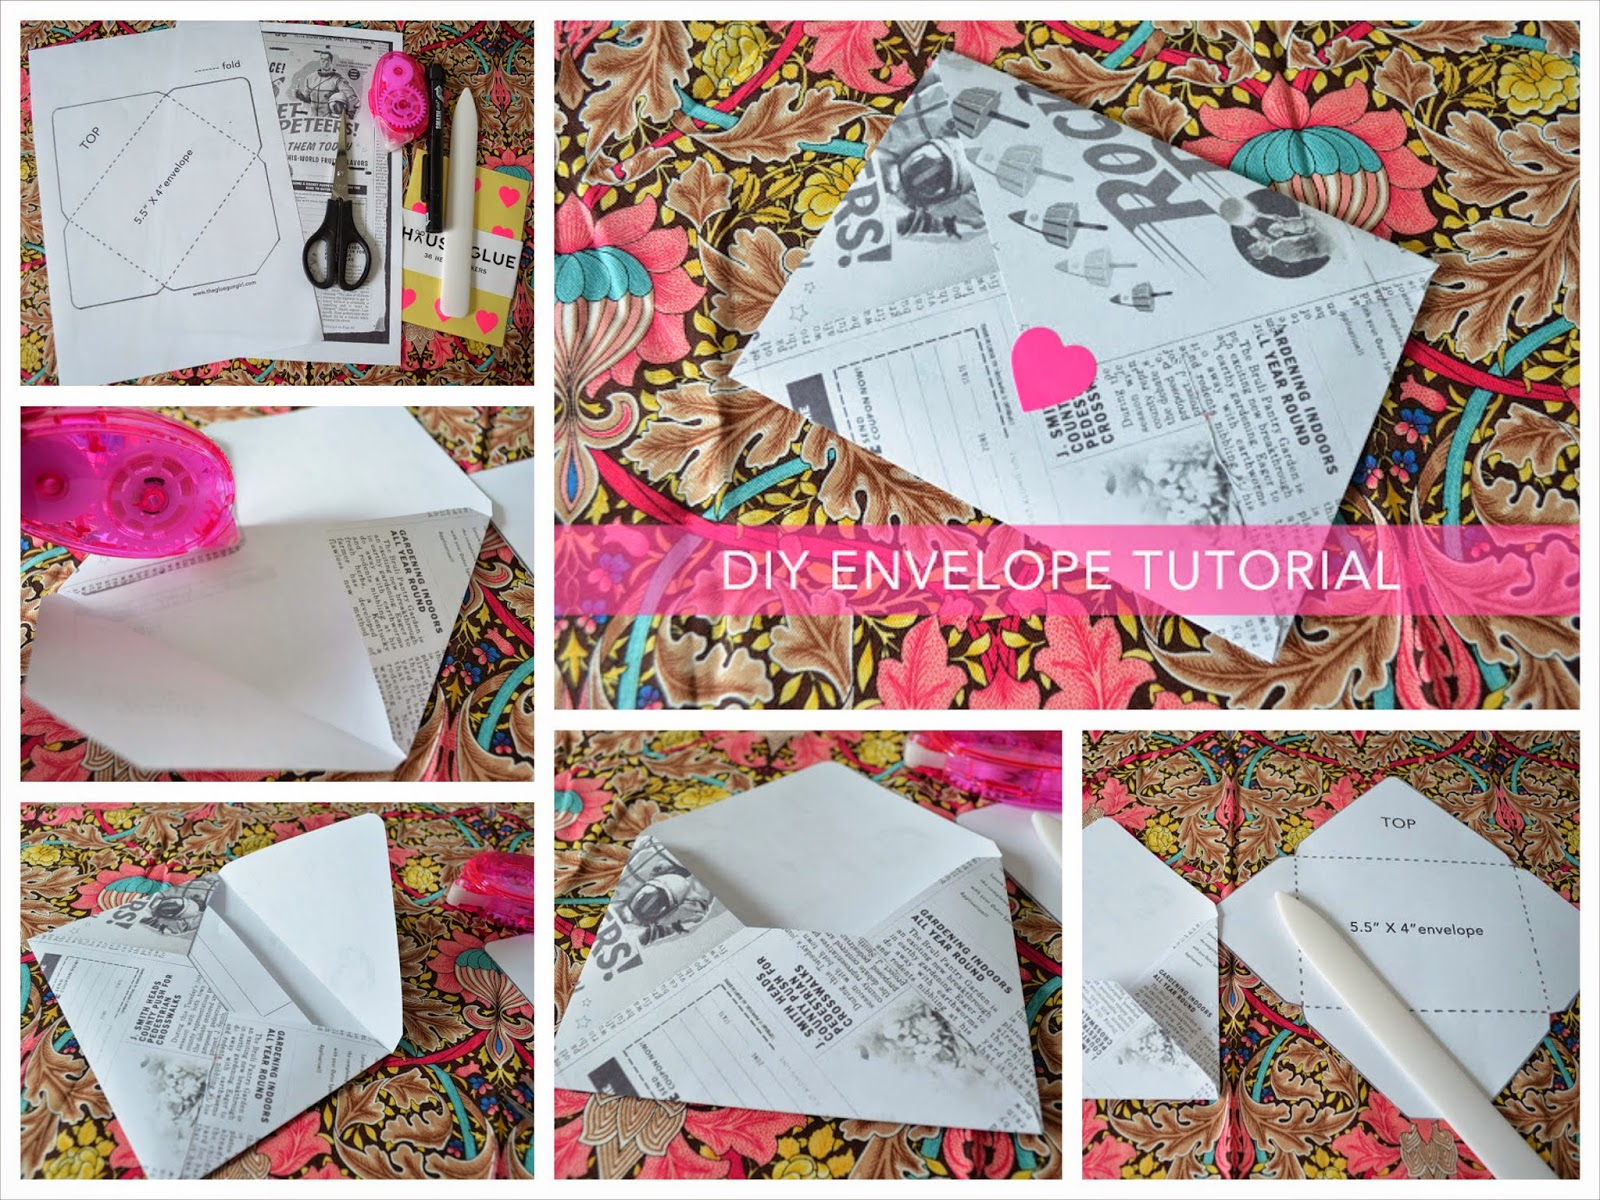 Photo tutorial to make a DIY envelope